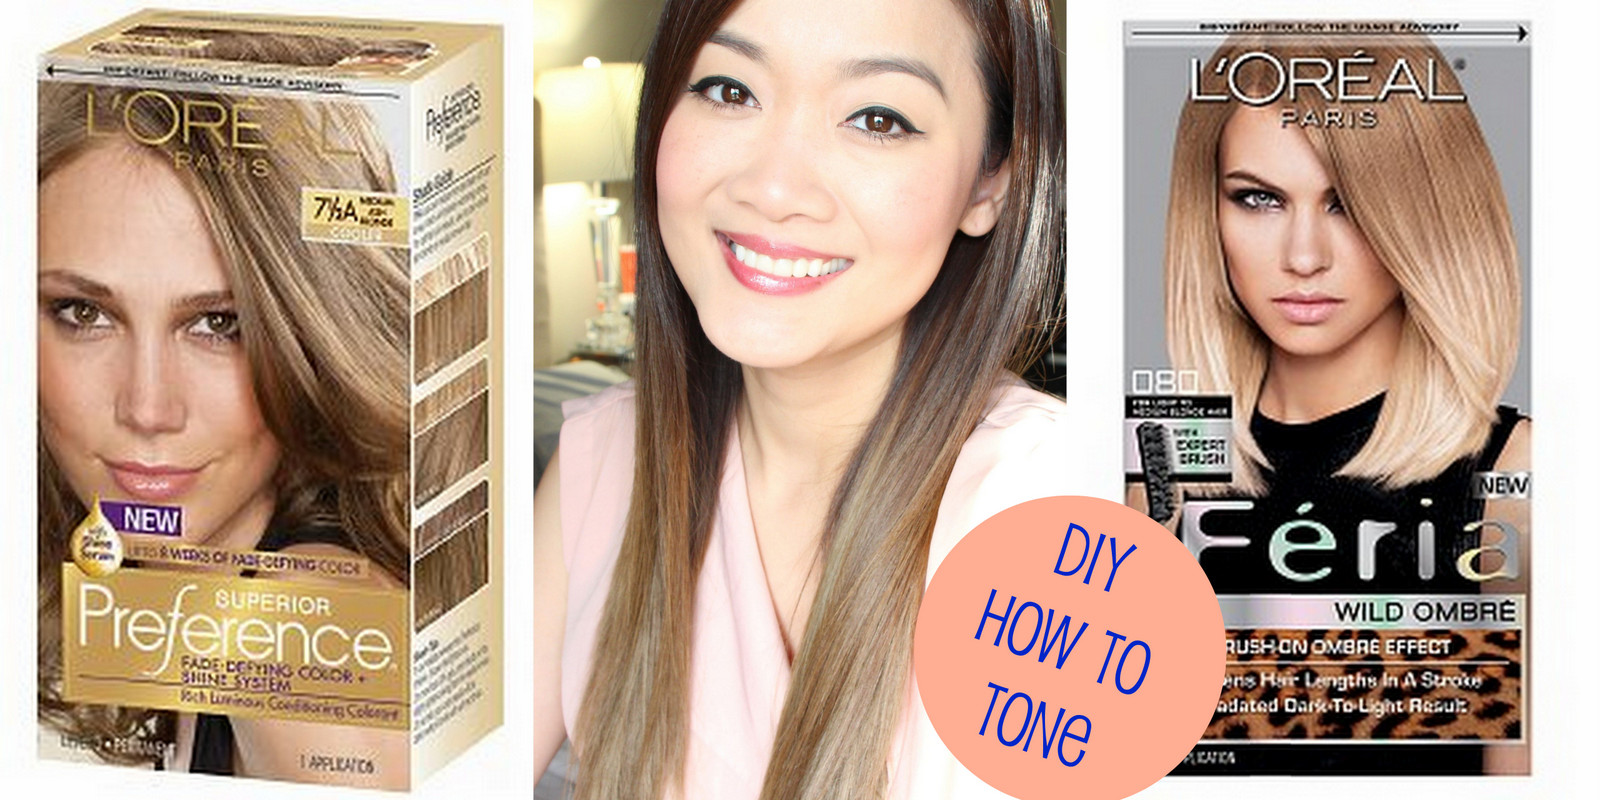 Loreal Ombre On Dyed Hair Simplymodish Diy How To Tone Brassy Hair